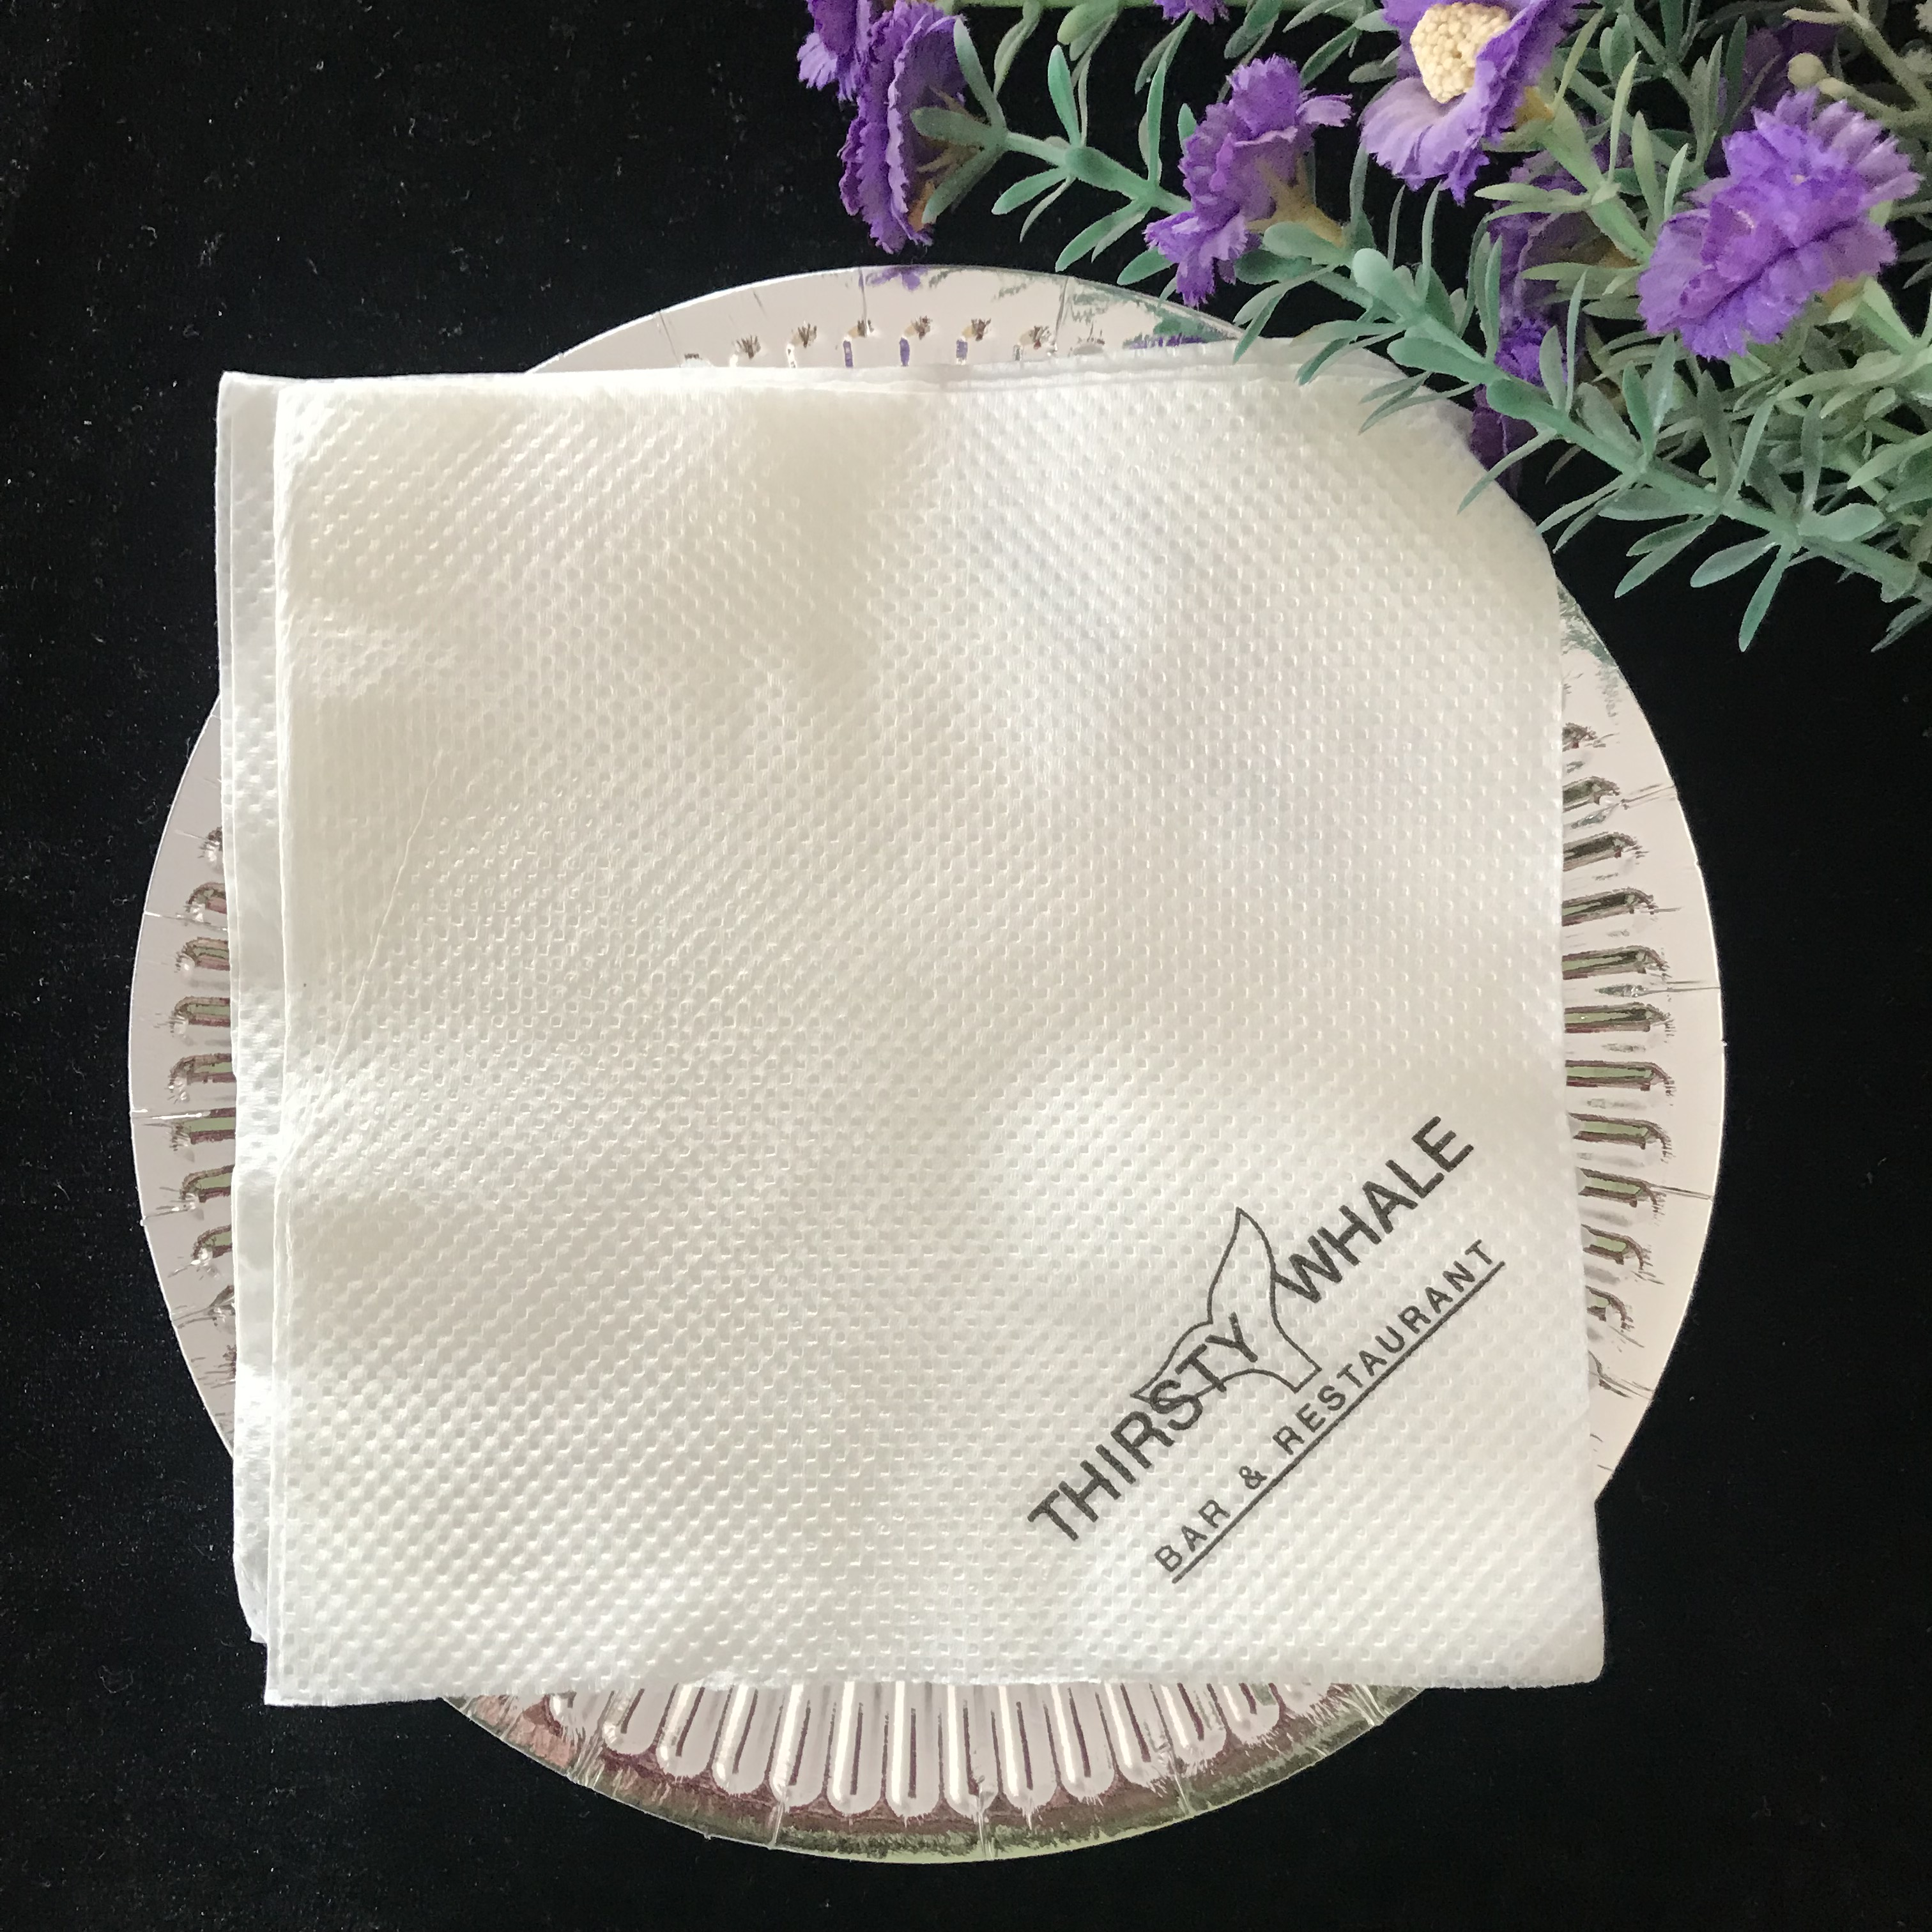 Cheap recycled  napkins with logo 30cm*30cm 1ply  Disposable Paper Party Supplies - Soft, Decorative Napkins for Lunch